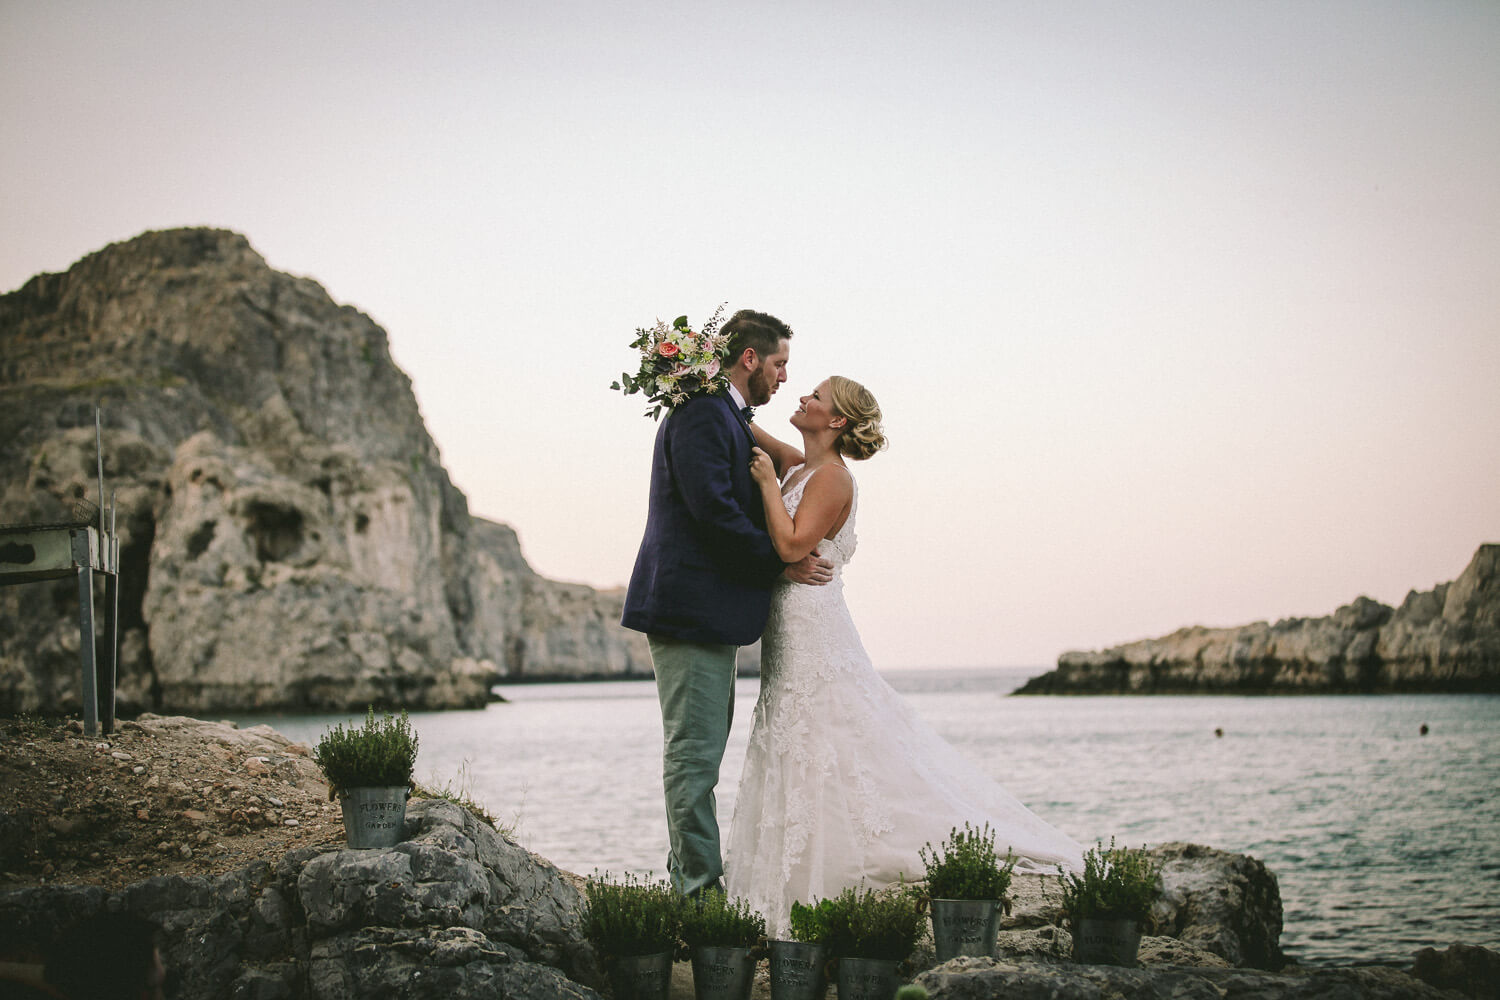 Sunset wedding pictures St Paul's Bay Lindos. Weedy g In Rhodes Greece